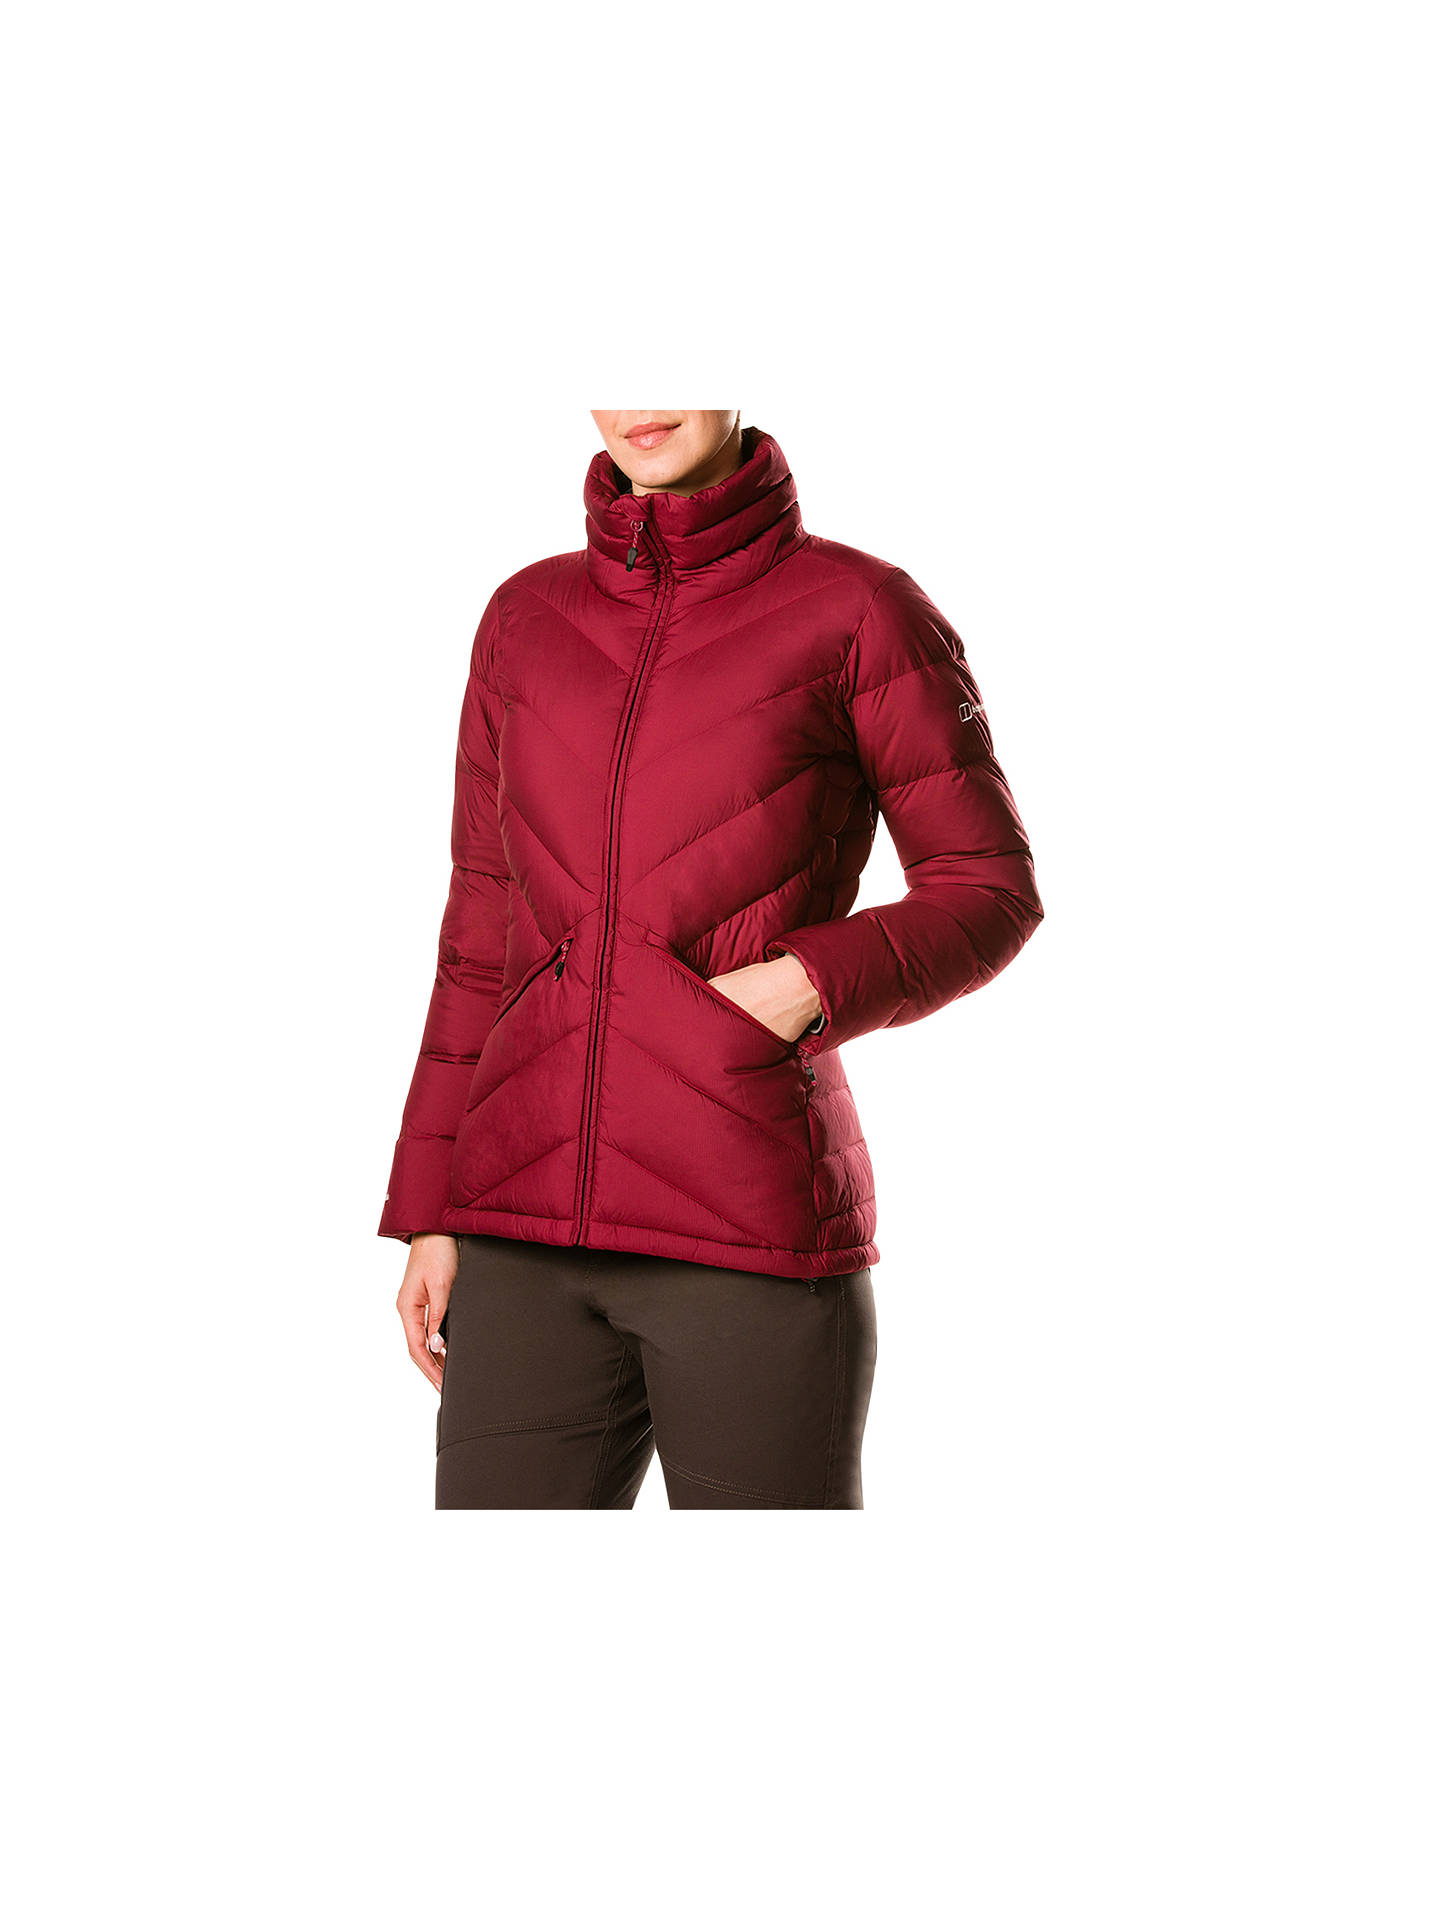 e0171cb23 Berghaus Easdale Insulated Women's Jacket at John Lewis & Partners